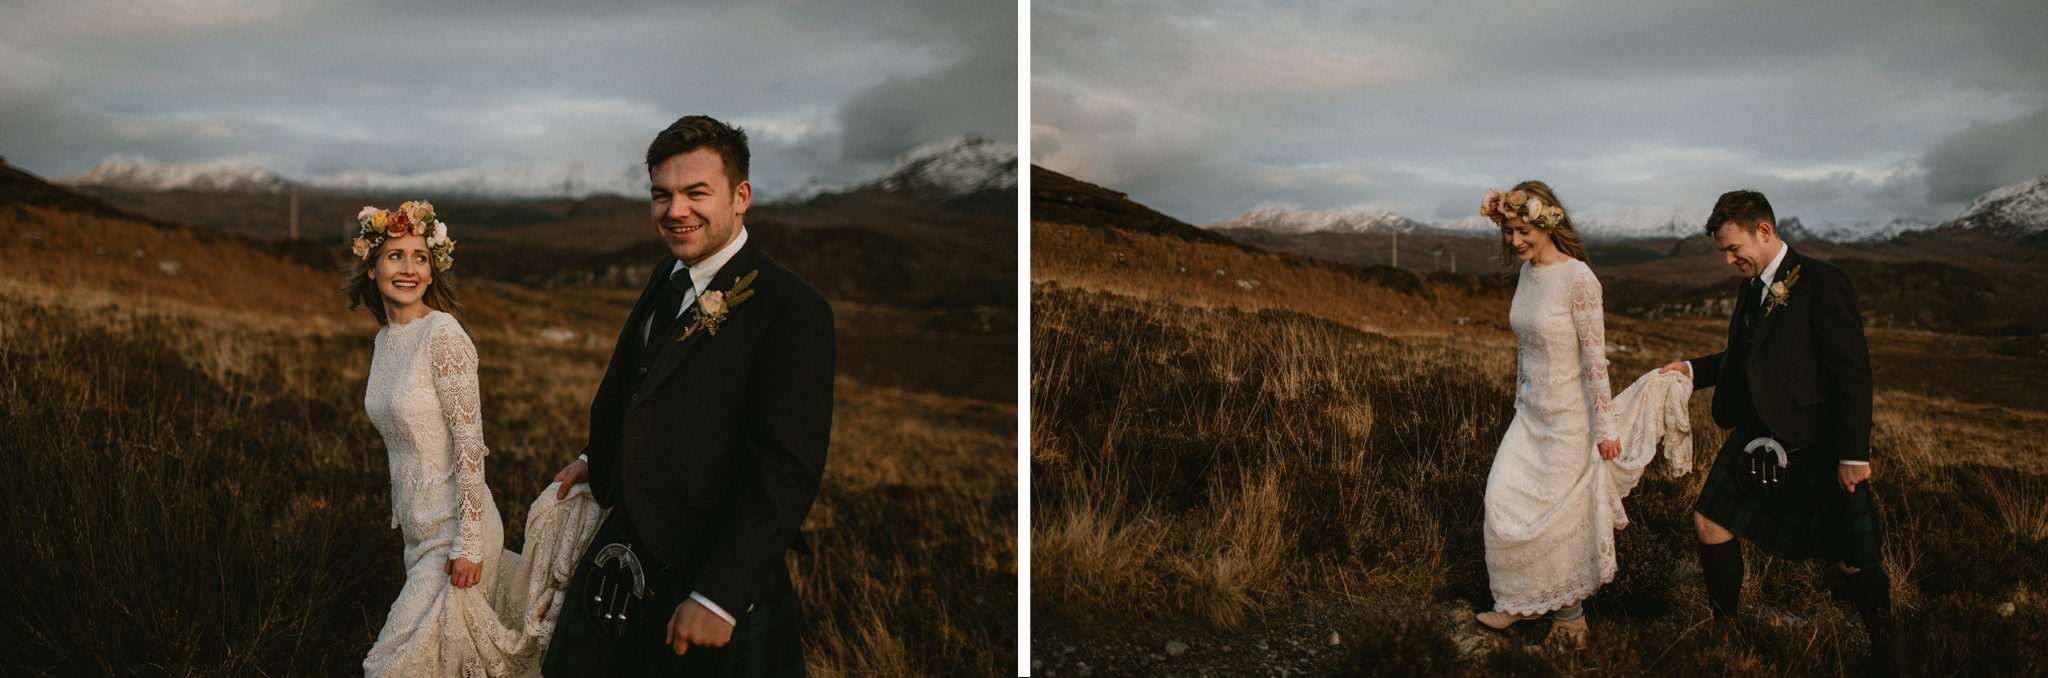 Scotland elopement married couple on hillside in Wester Ross